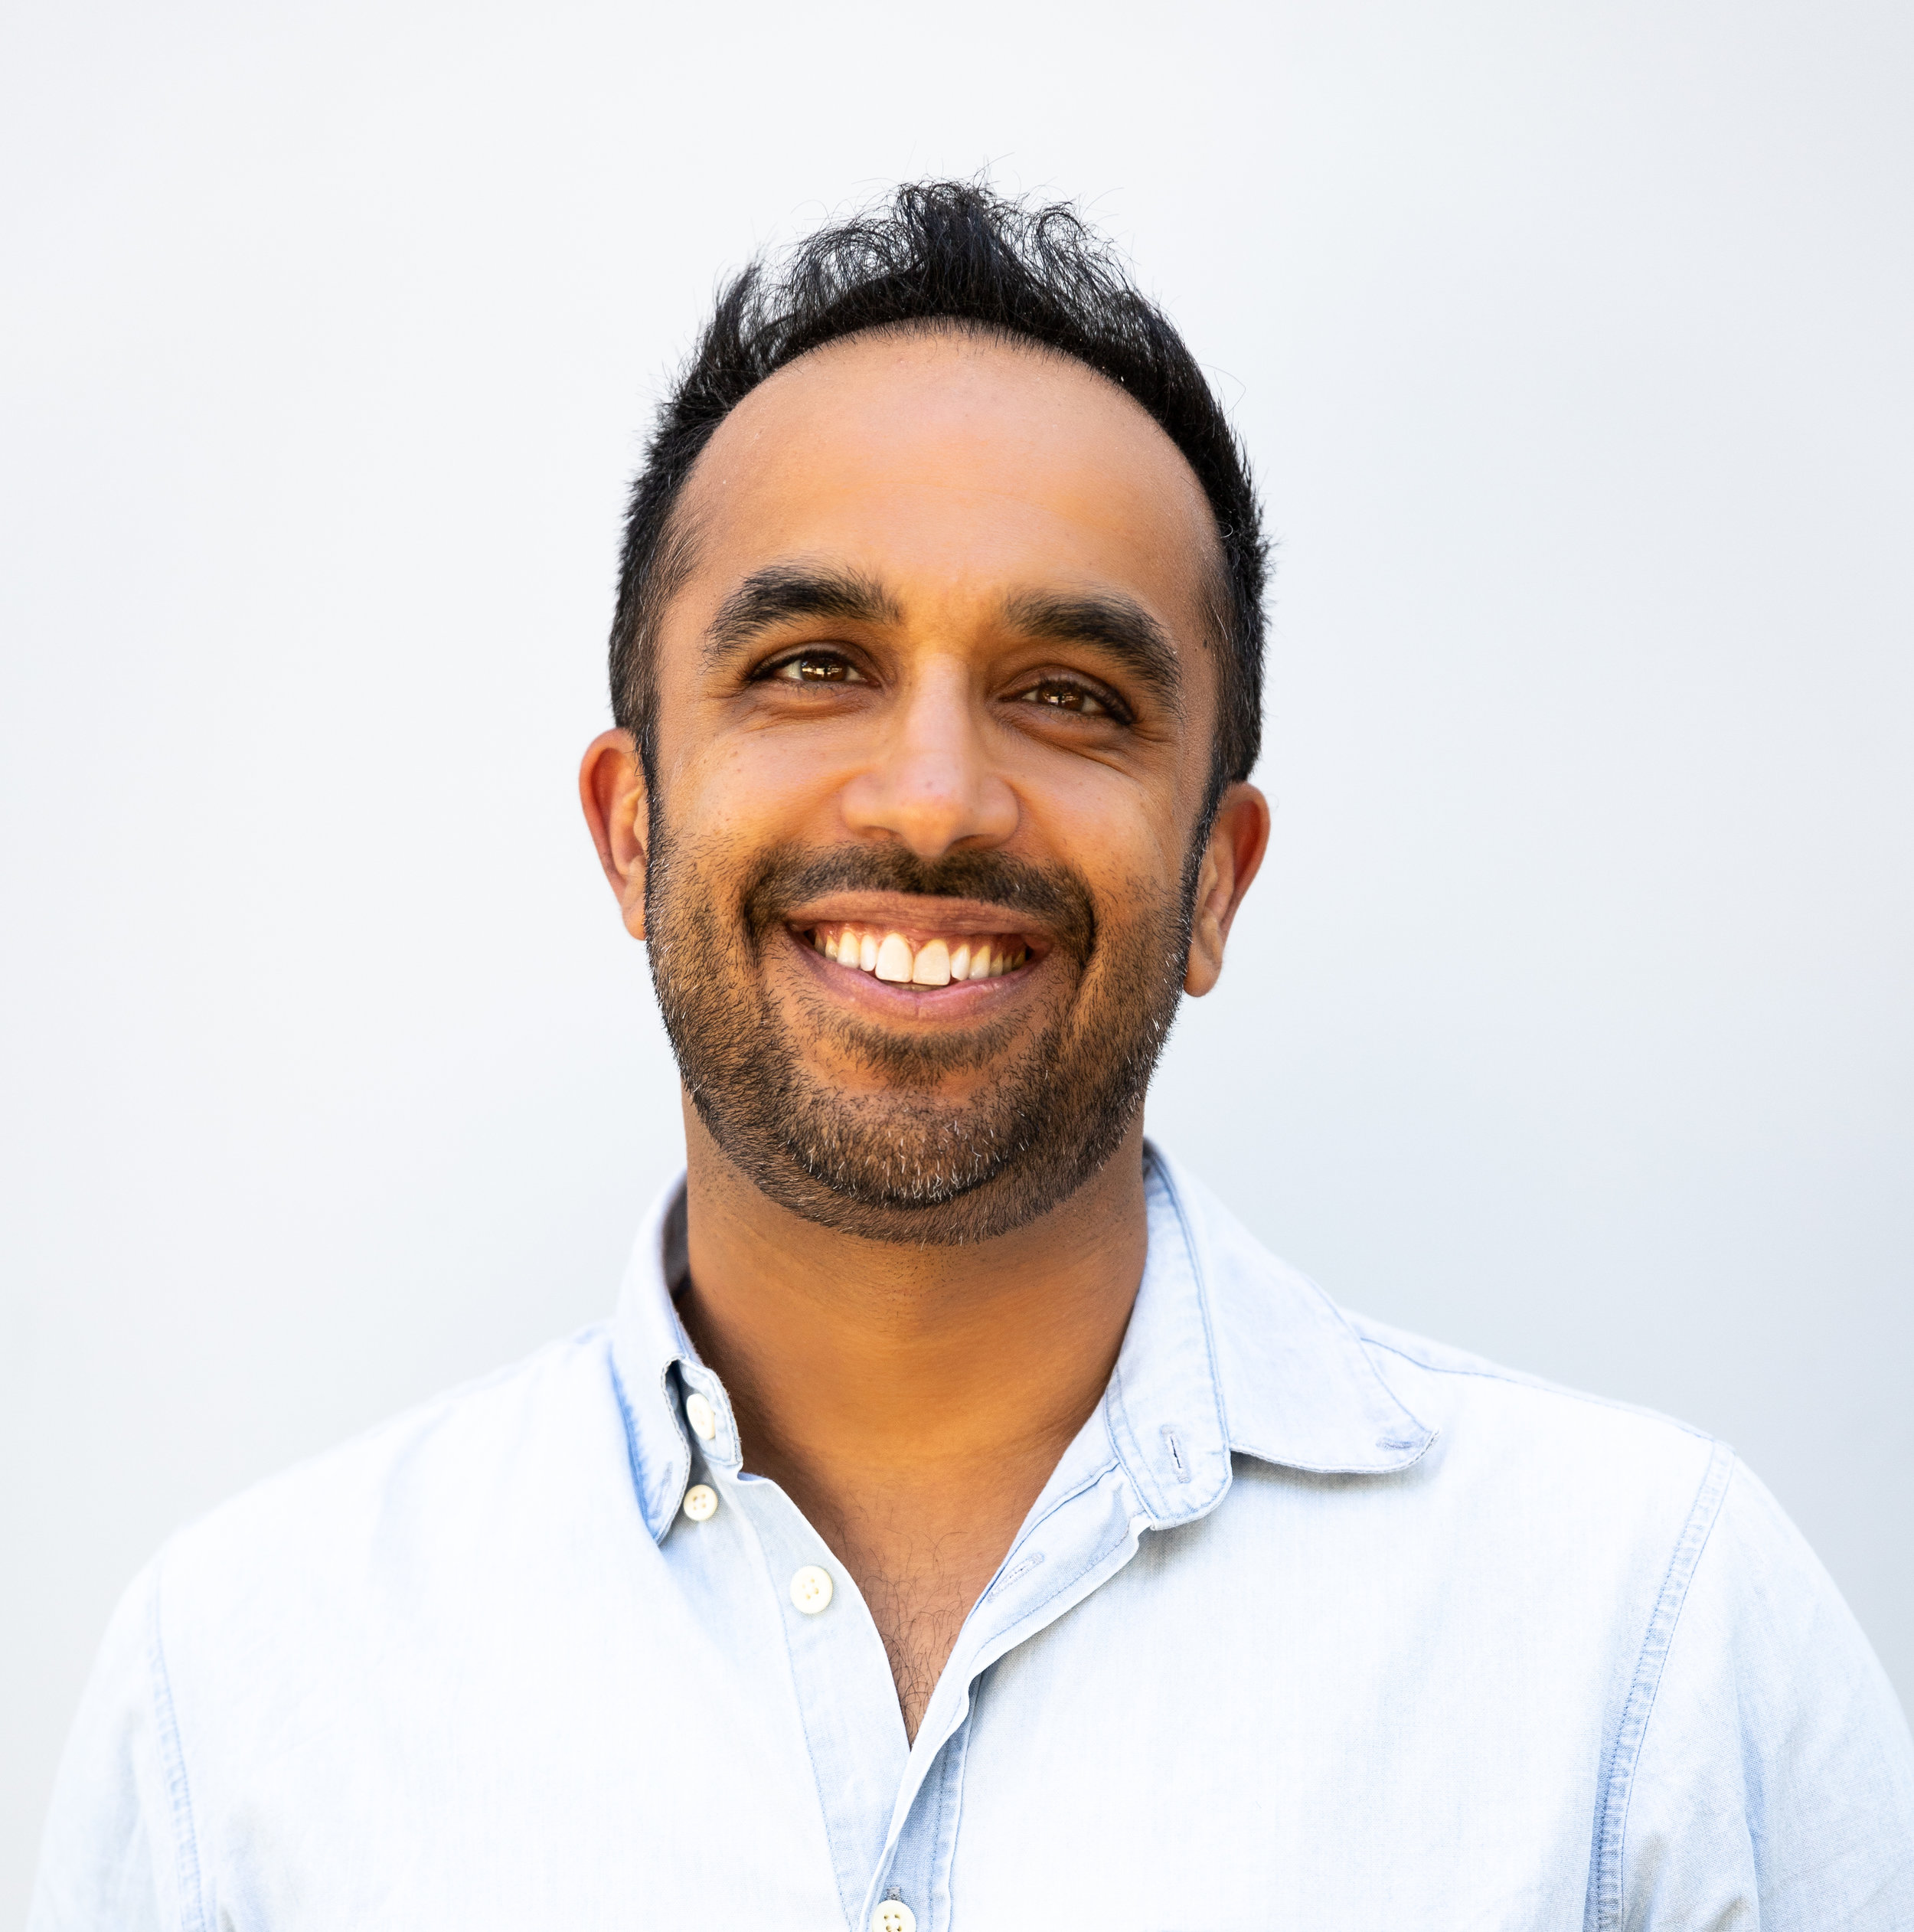 Neil Pasricha Photo by Leia Vita.jpg